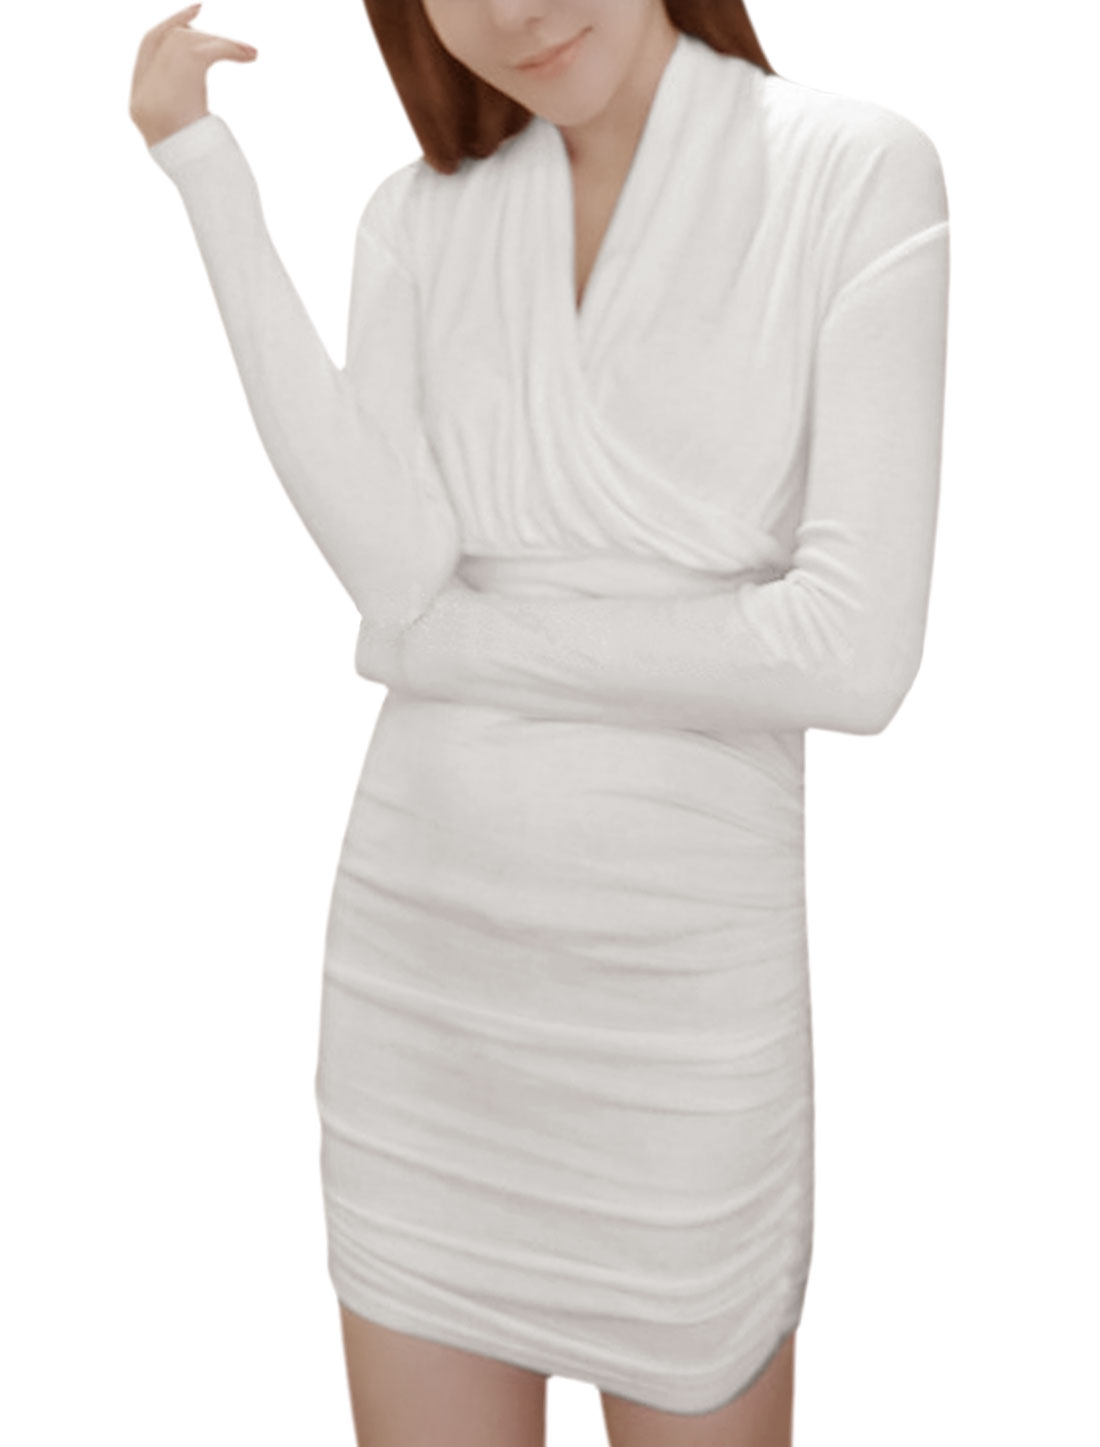 Women Long Sleeves Wrap Design Shirred Bodycon Dress White XS